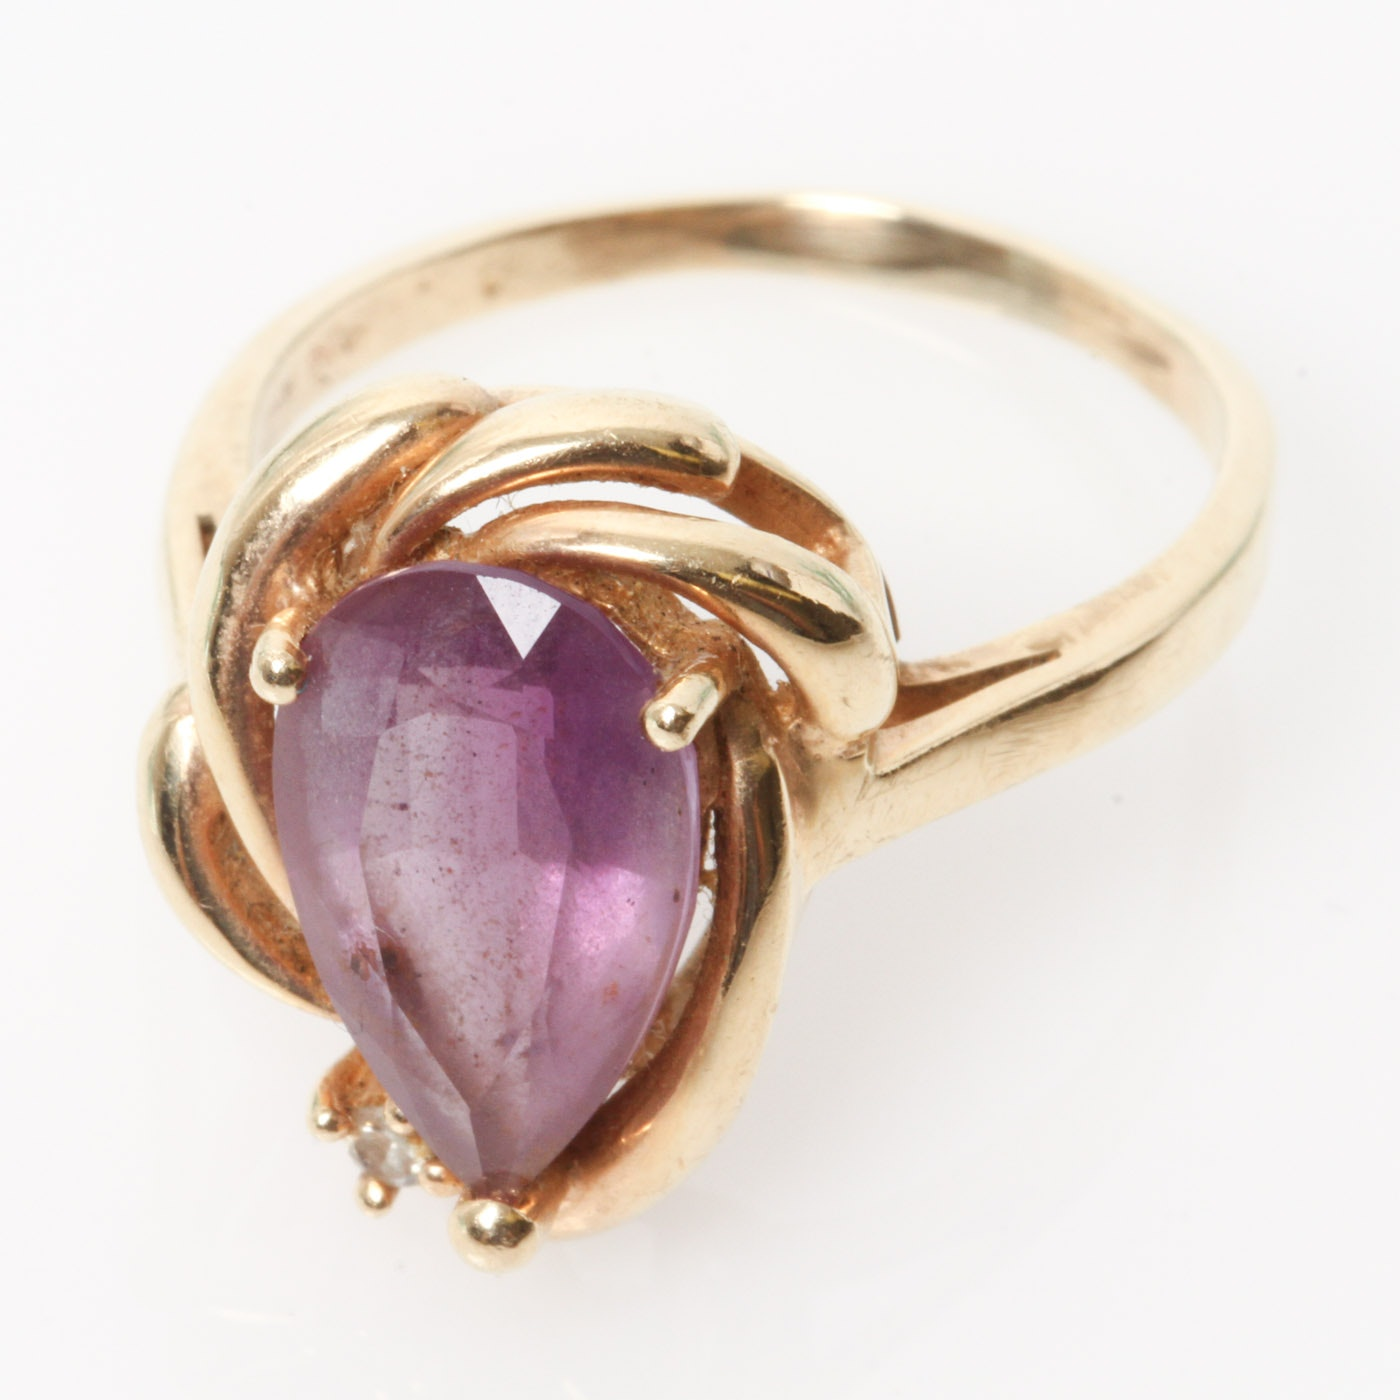 14K Yellow Gold, Pear Cut Amethyst, and Diamond Cocktail Ring